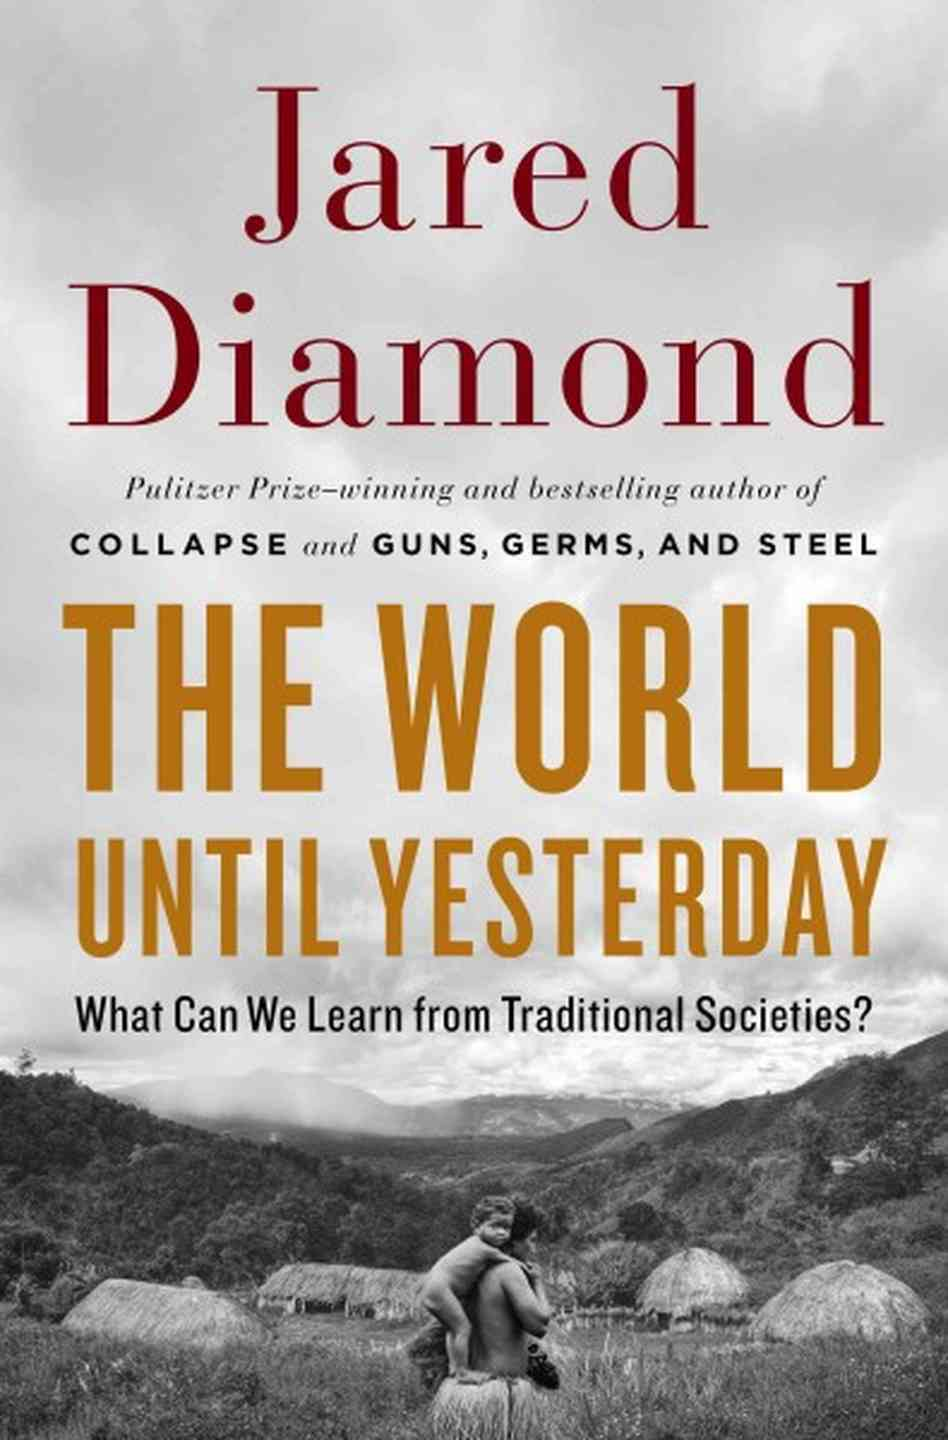 THE WORLD UNTIL YESTERDAY: WHAT CAN WE LEARN FROM TRADITIONAL SOCIETIES BY JARED DIAMOND